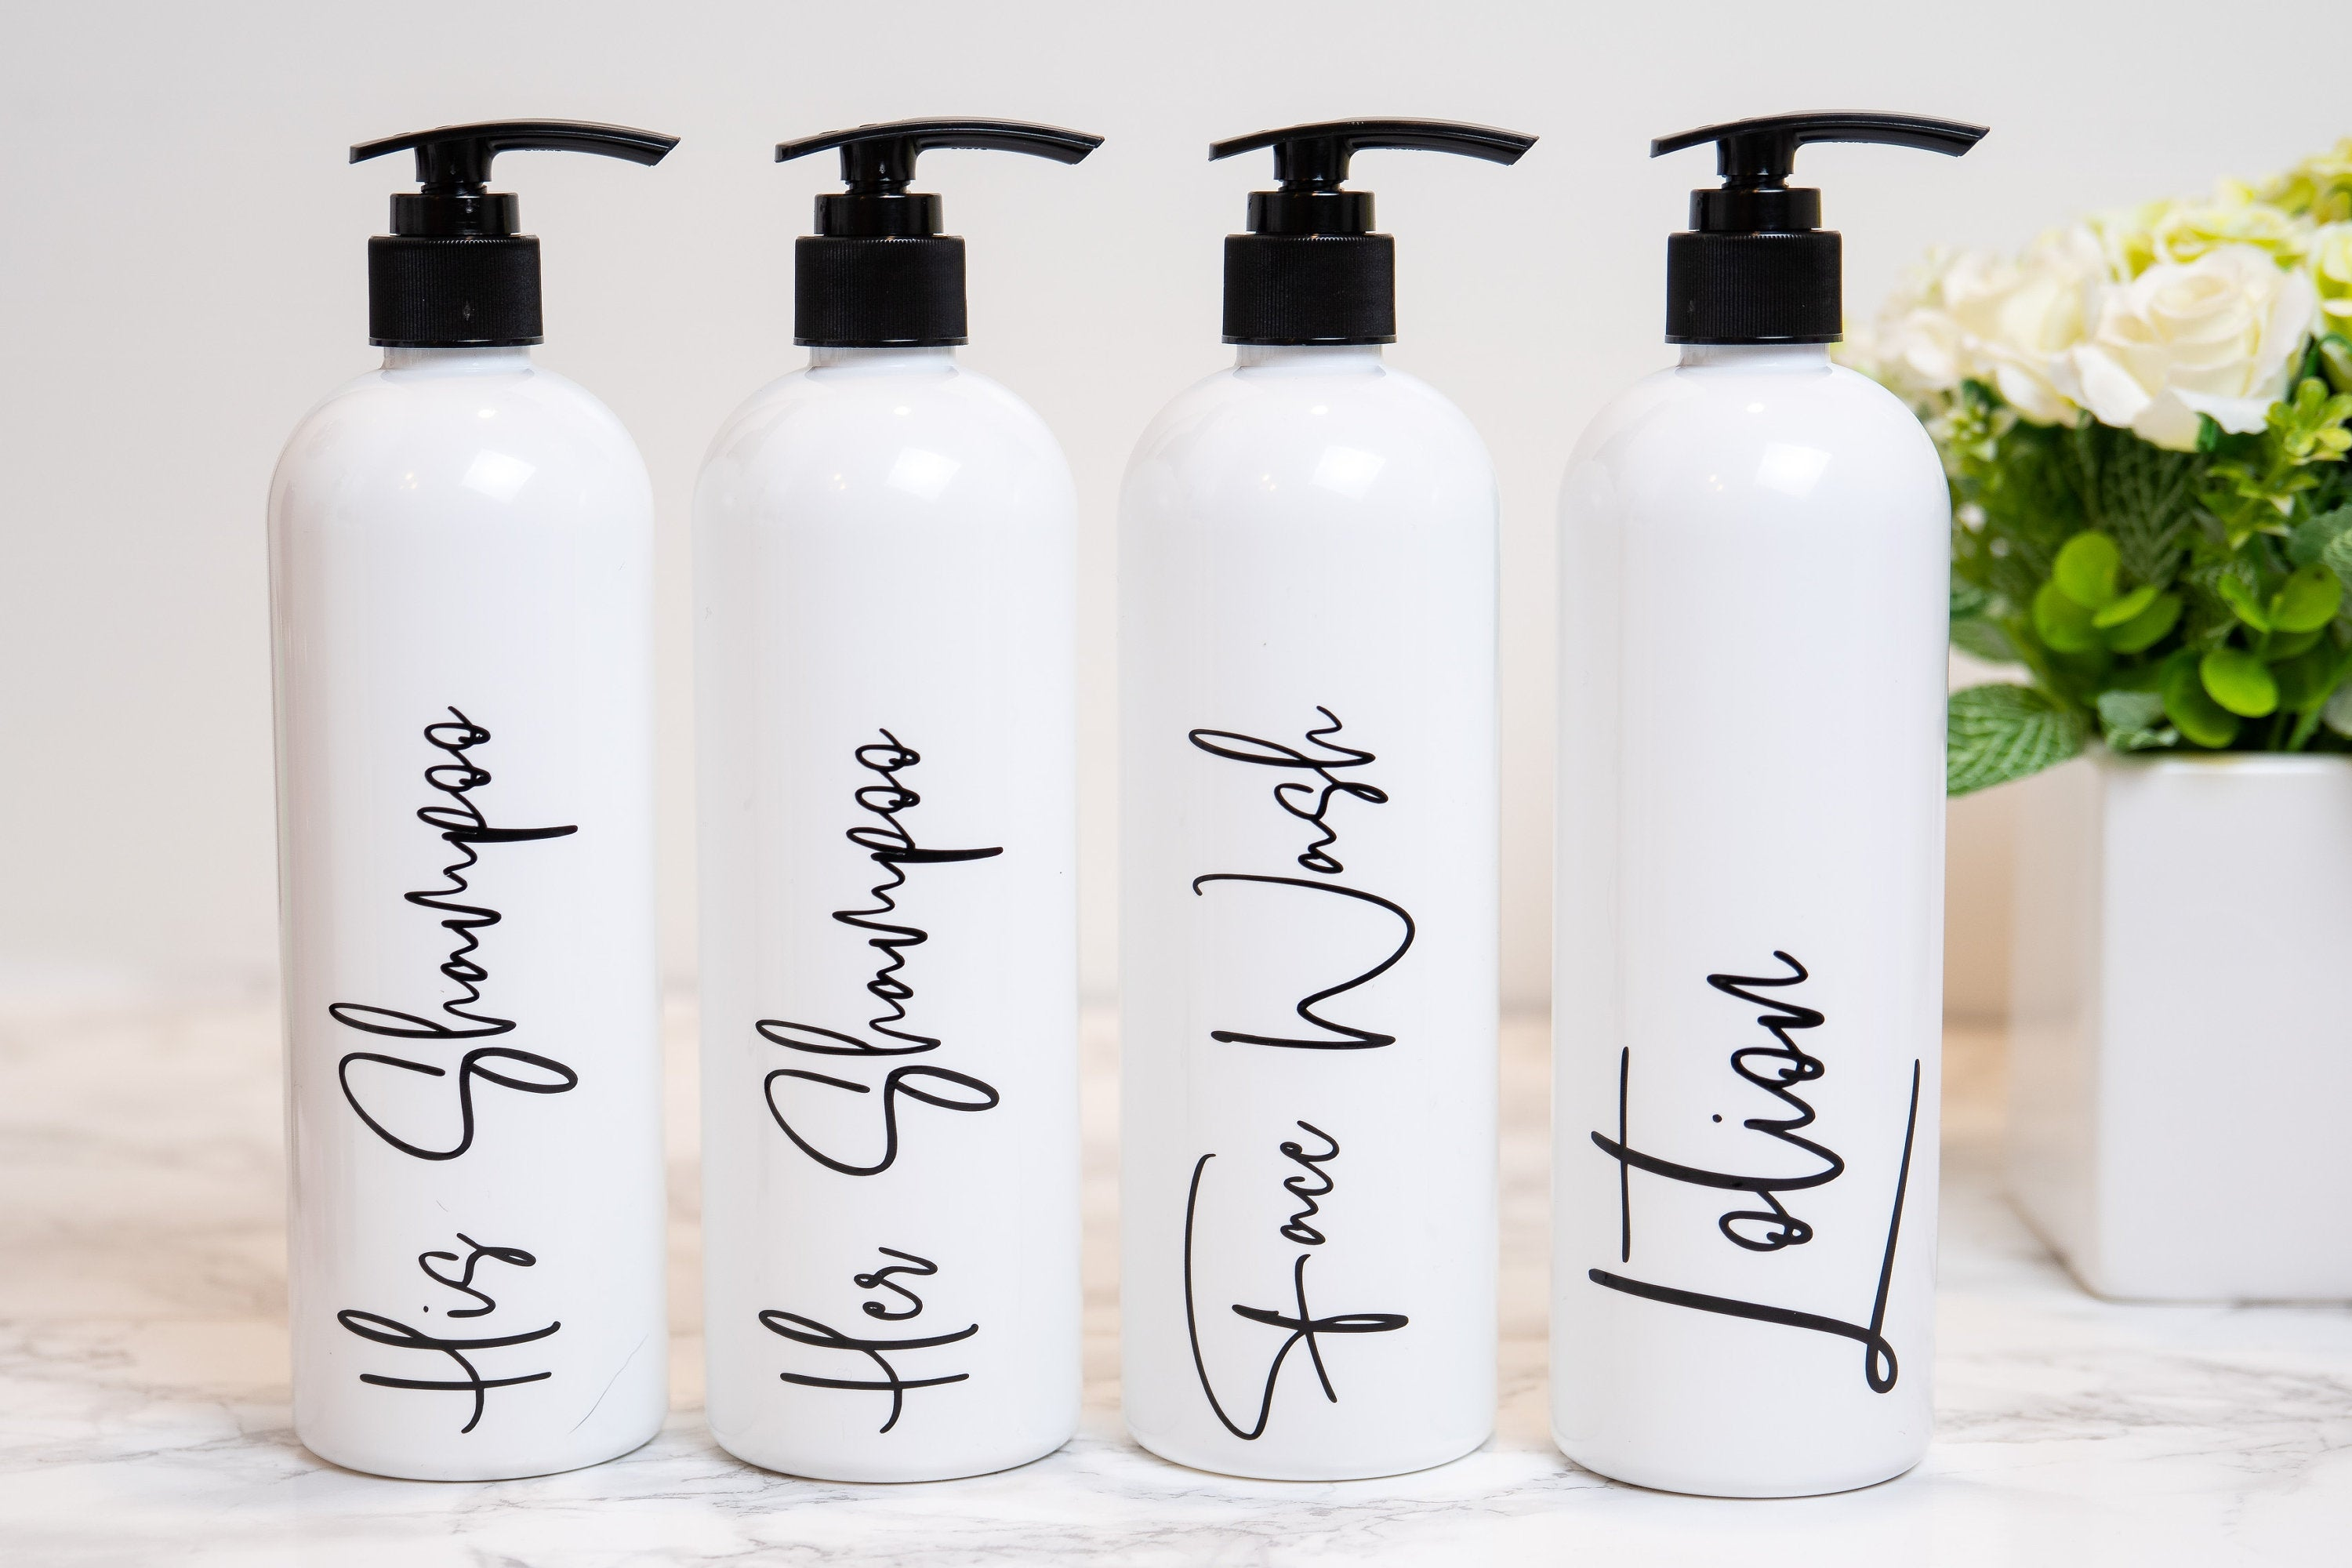 Shampoo Bottles with Pump, Modern Bathroom Decor, Bathroom Shower Decor, Bathroom Organization, Shampoo and Conditioner Bottles